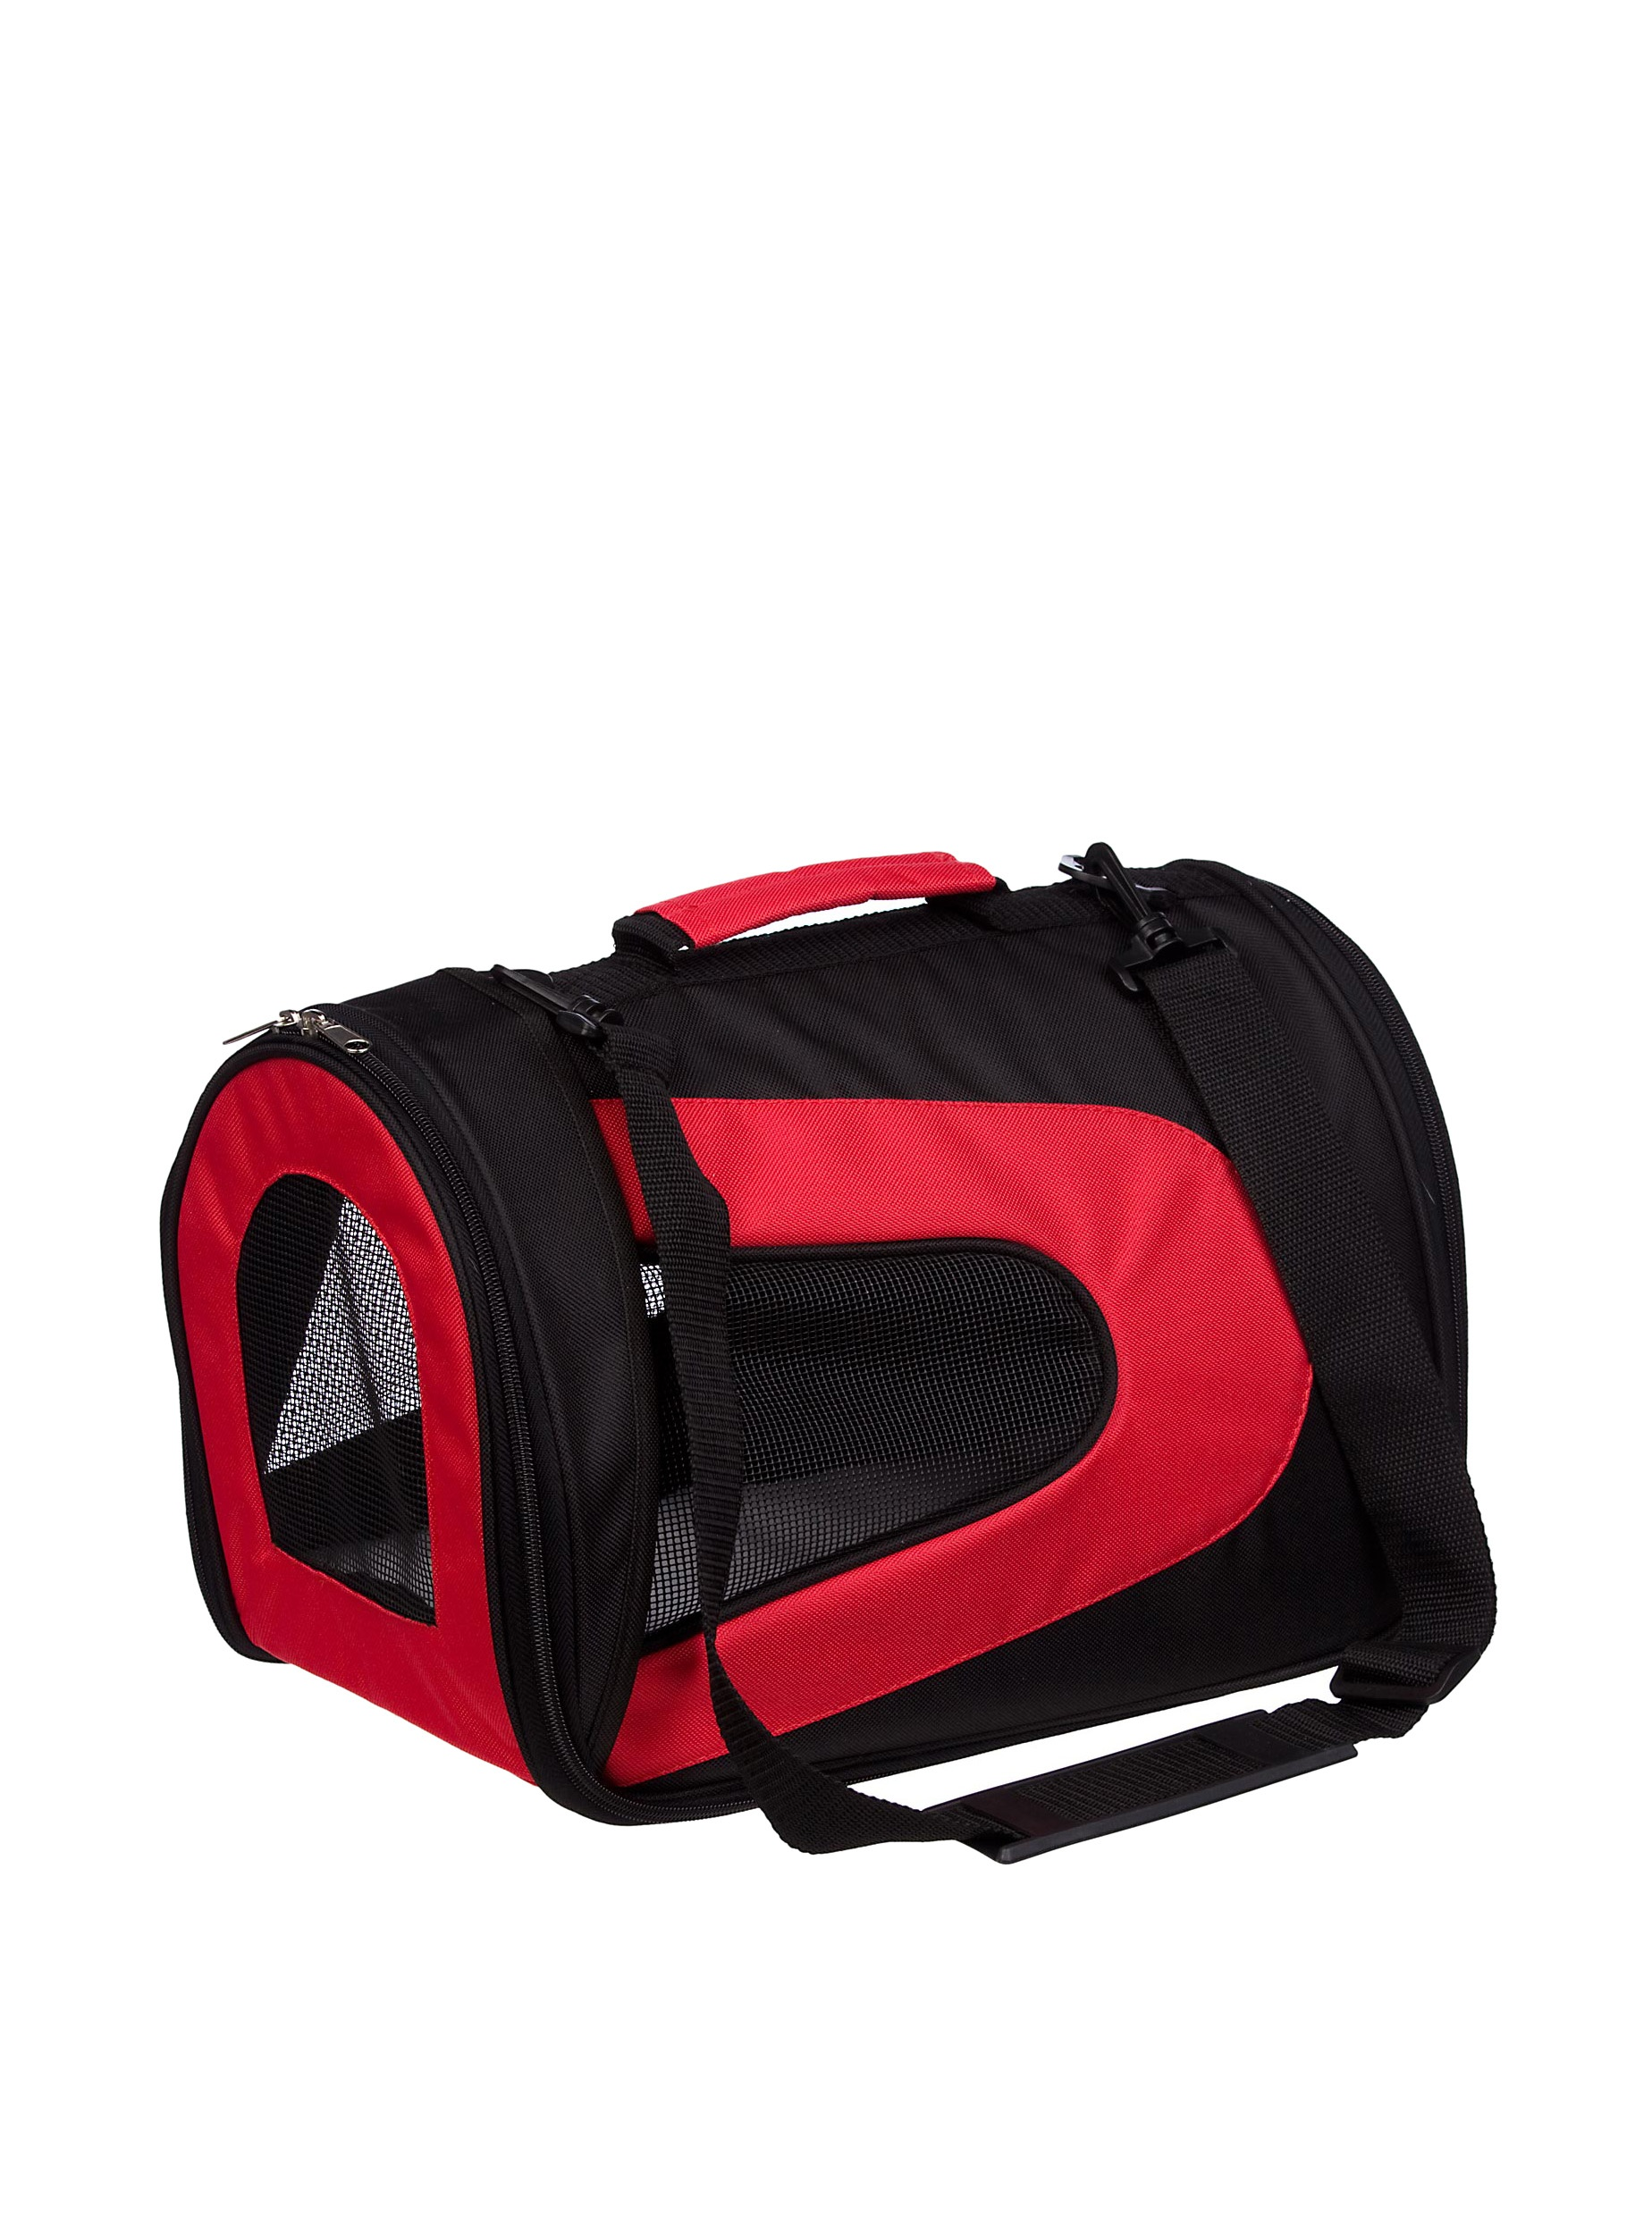 Pet Life Sporty Mesh Carrier (Black/Red)